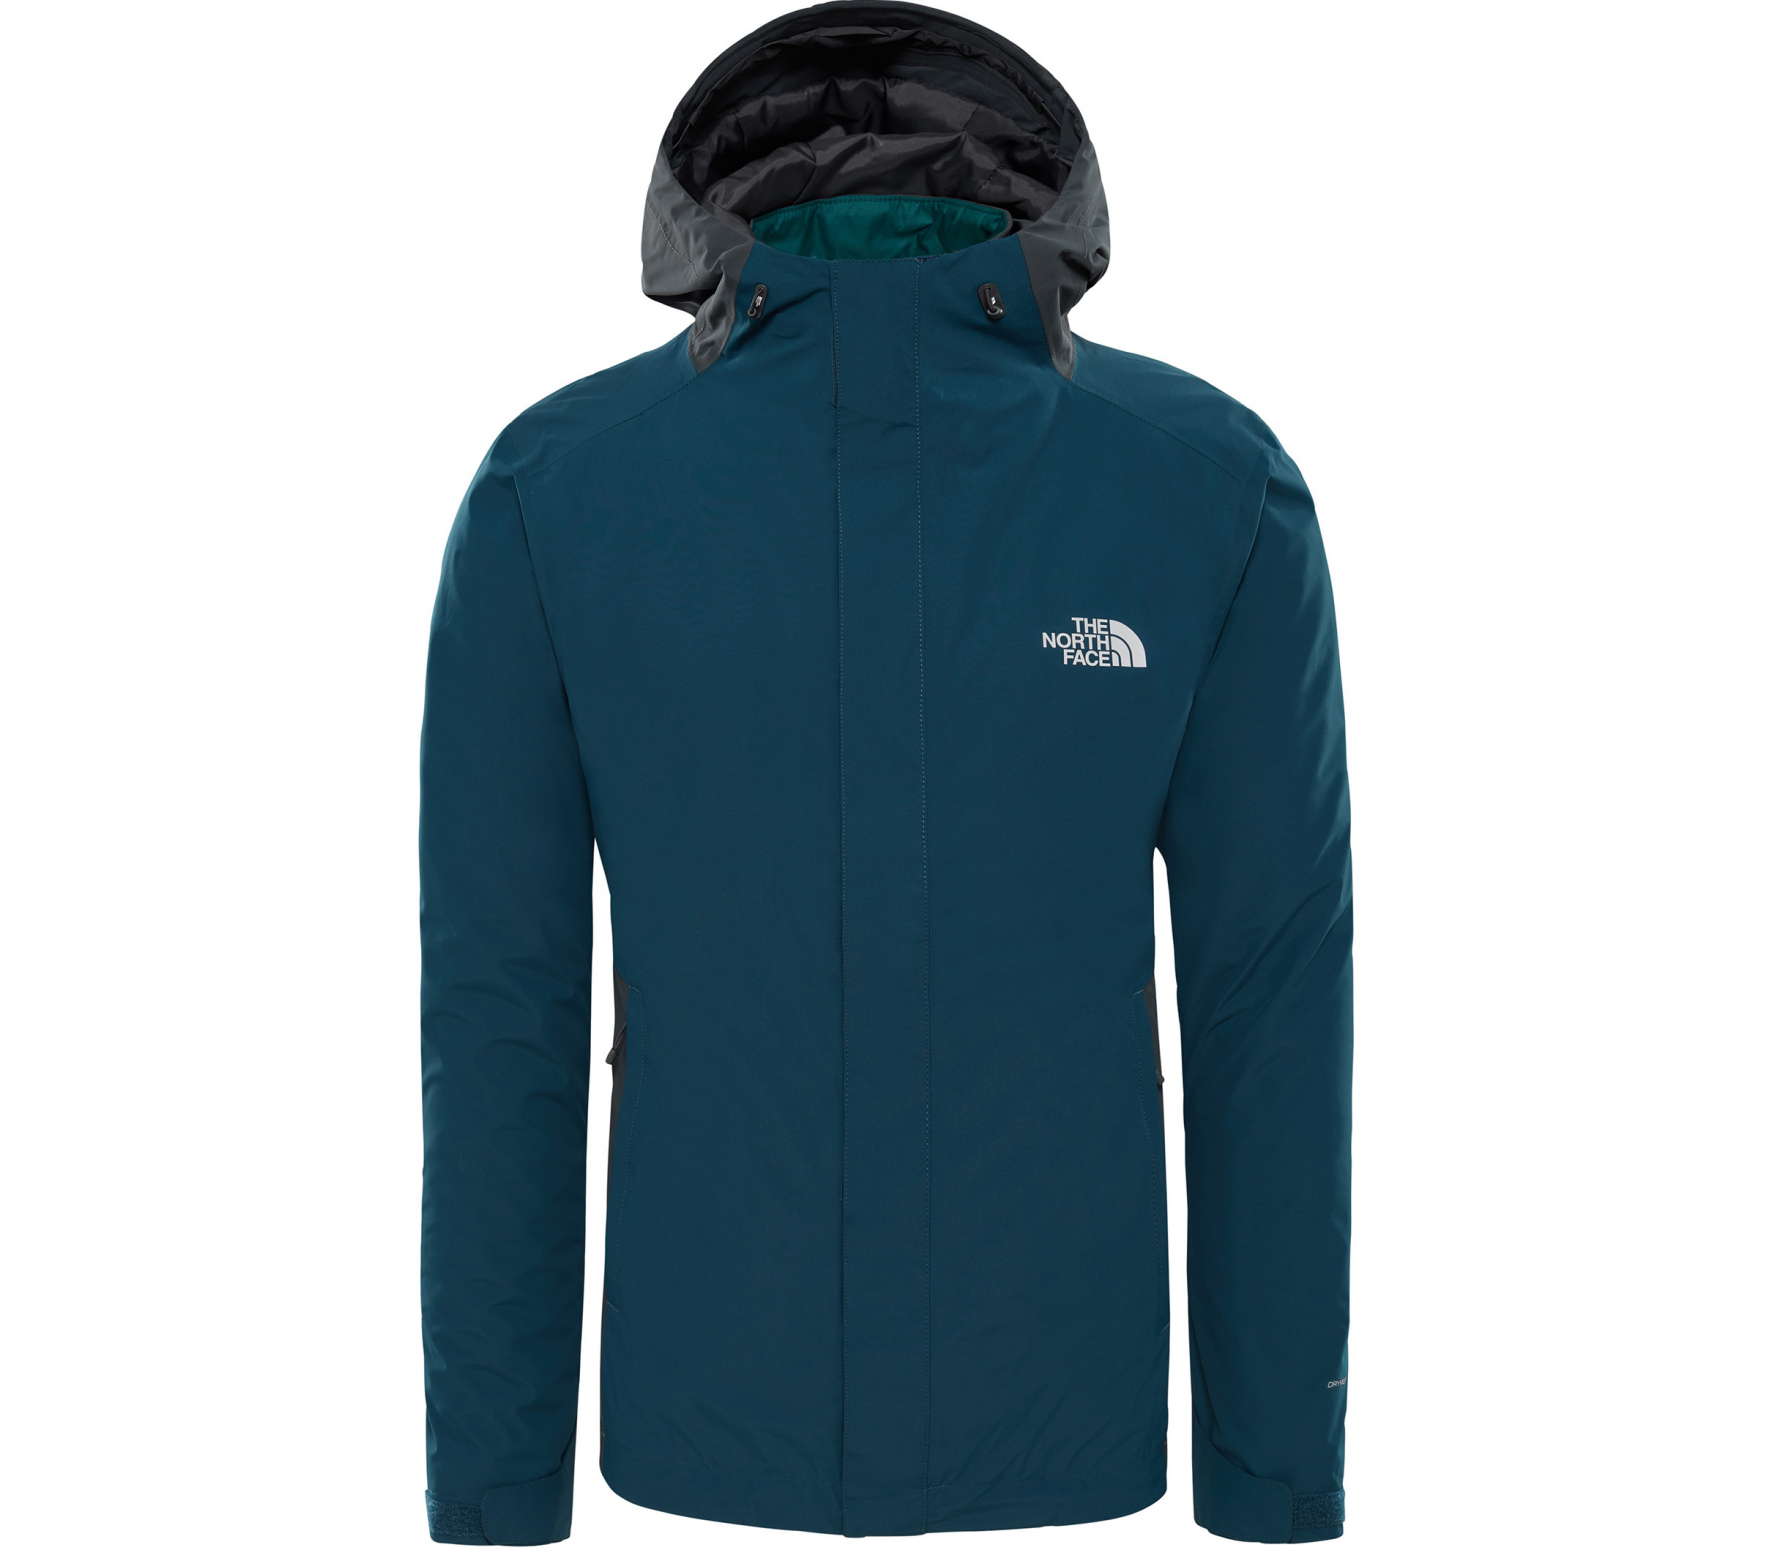 c698383c996 The North Face - Merak Triclimate men s outdoor jacket (blue green ...